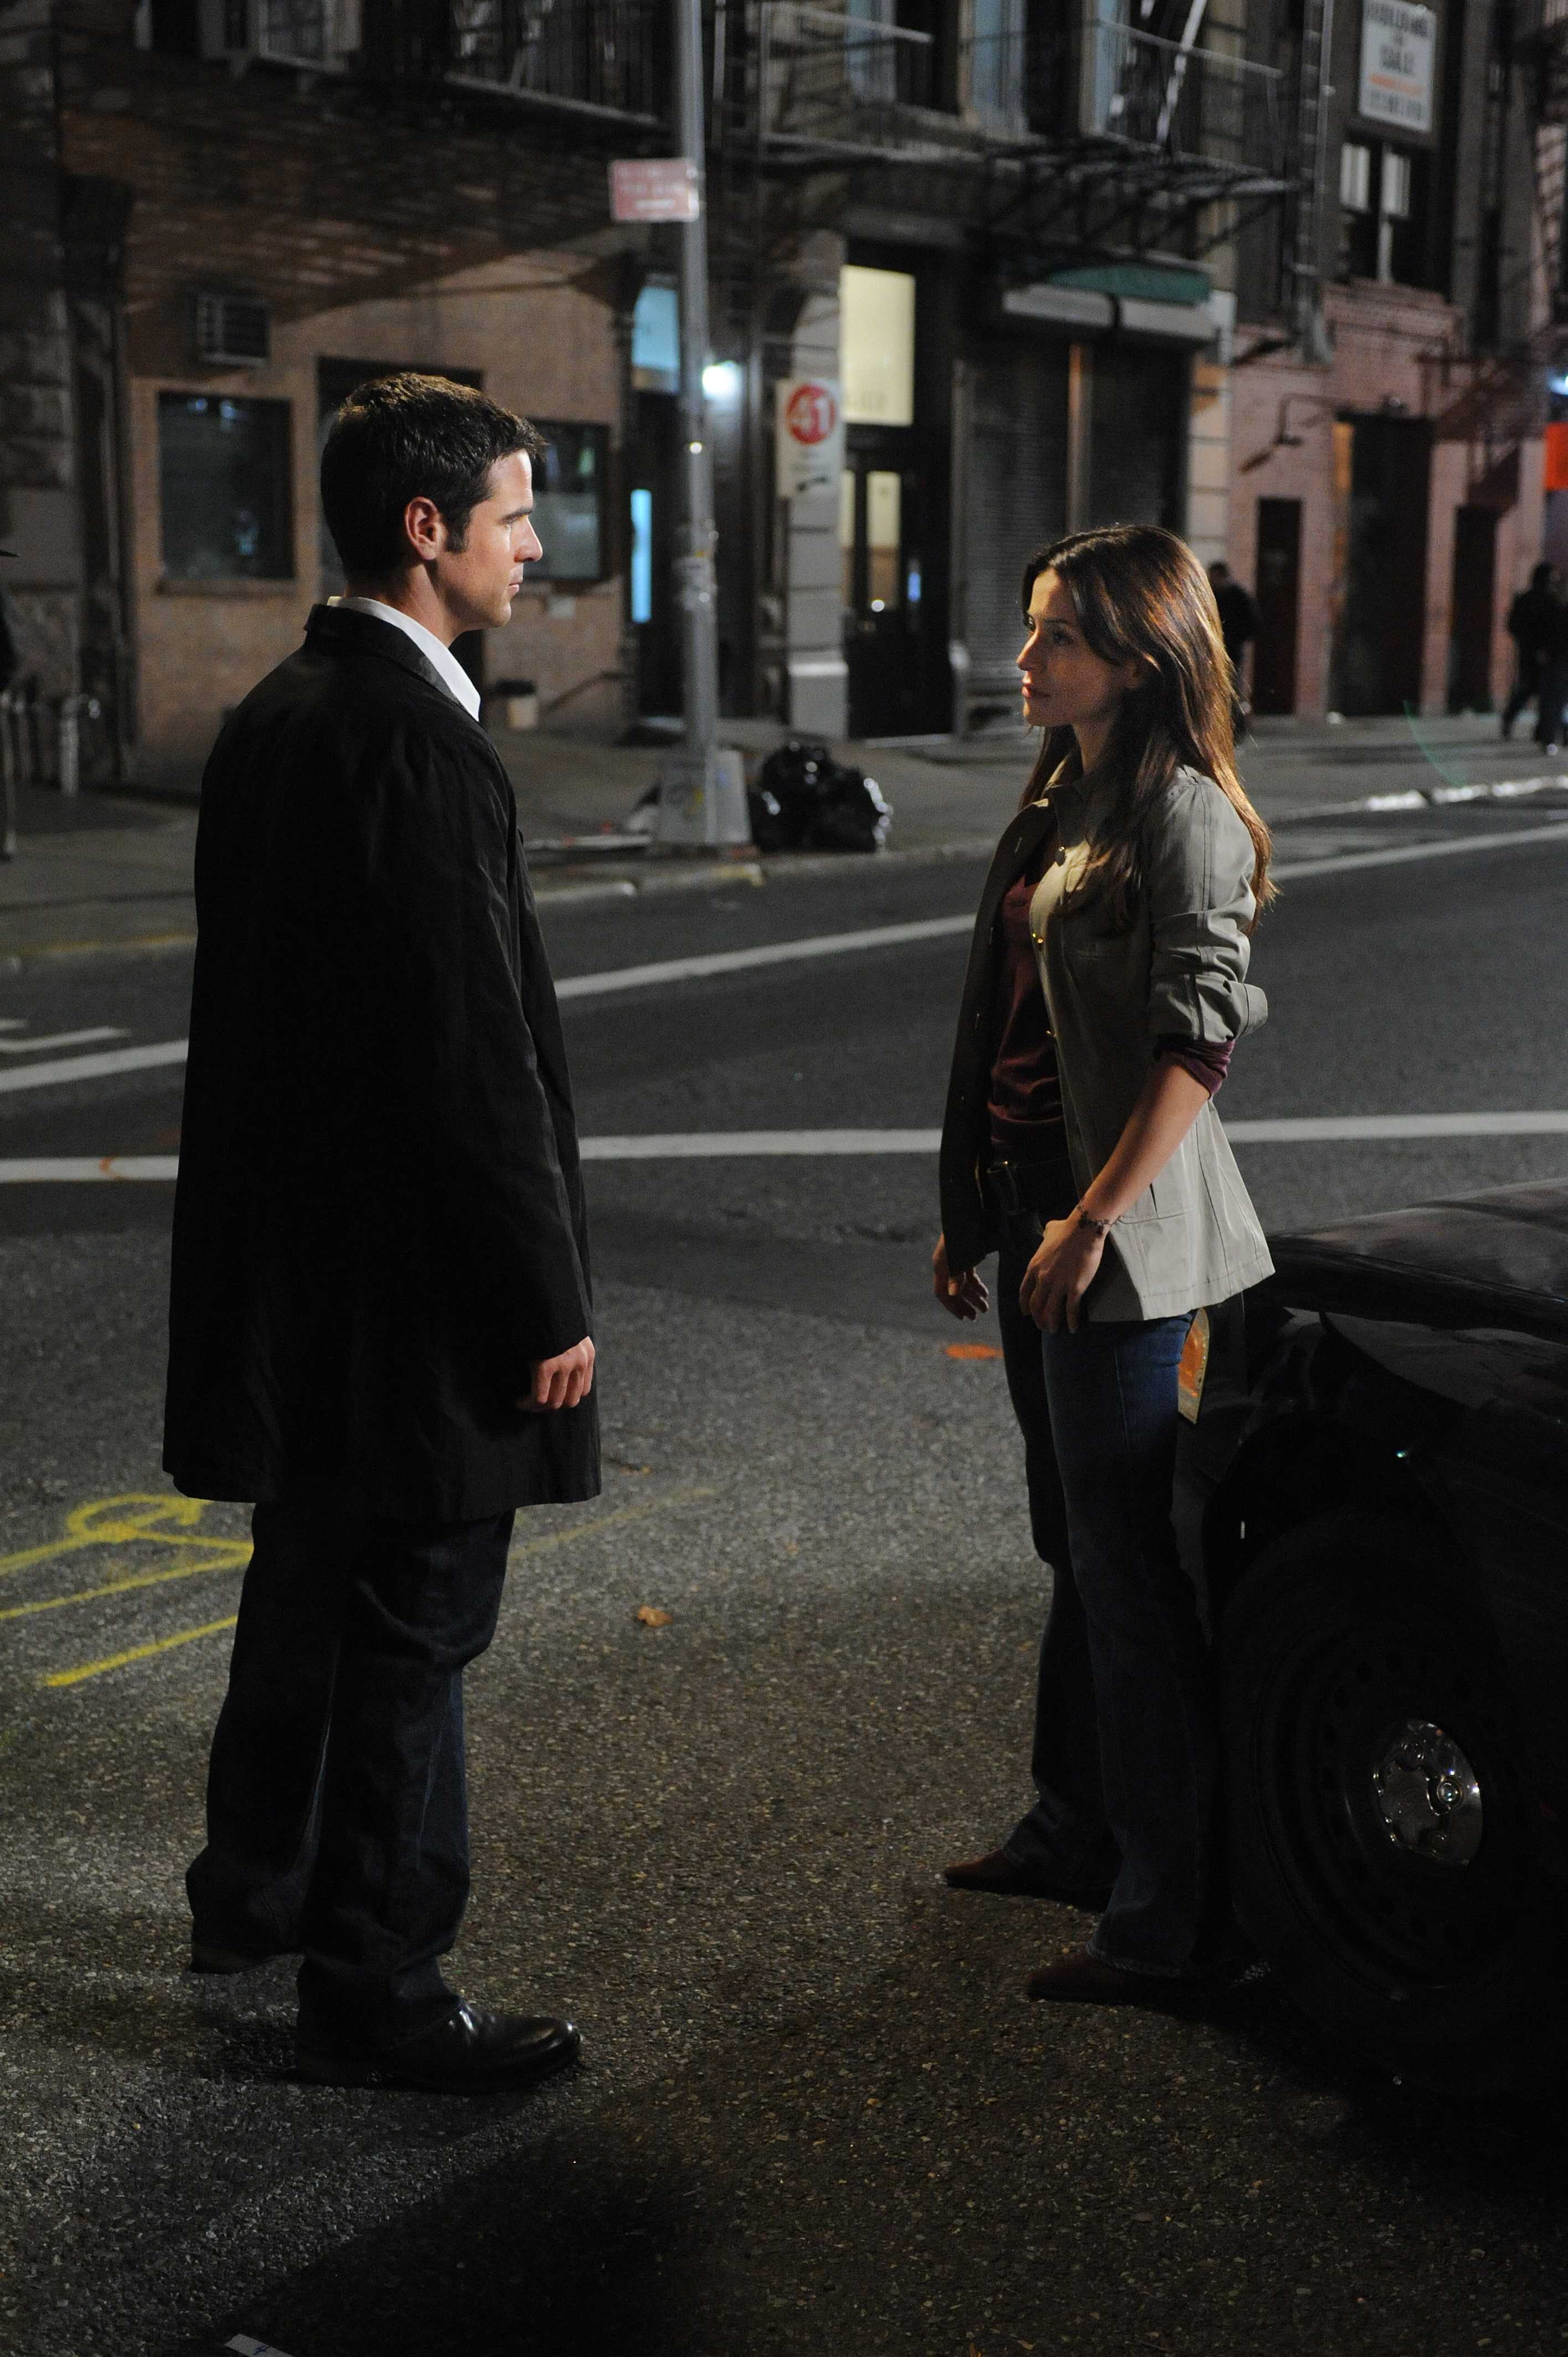 """Detective Don Flack (Eddie Cahill) and Detective Jessica Angell (Vaugier) in a scene from the CSI: NY episode """"Dead Inside."""" Photo by David M. Russell and copyright of CBS/Paramount TV"""